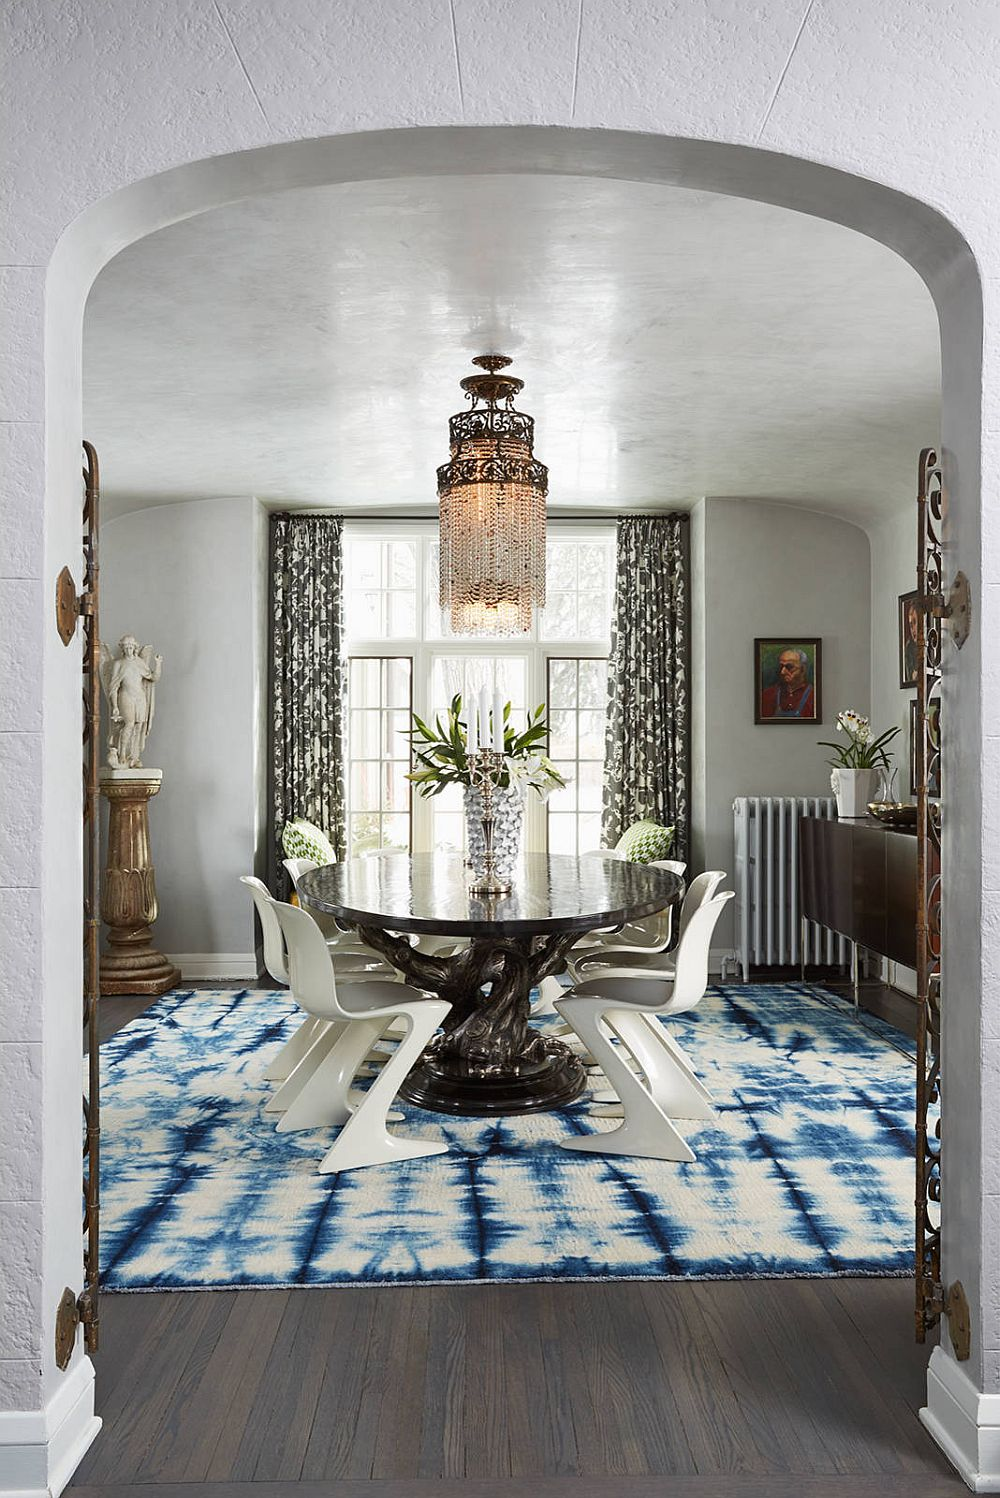 Add color and playfulness to your contemporary dining room in neutral hues with a dashing, colorful rug